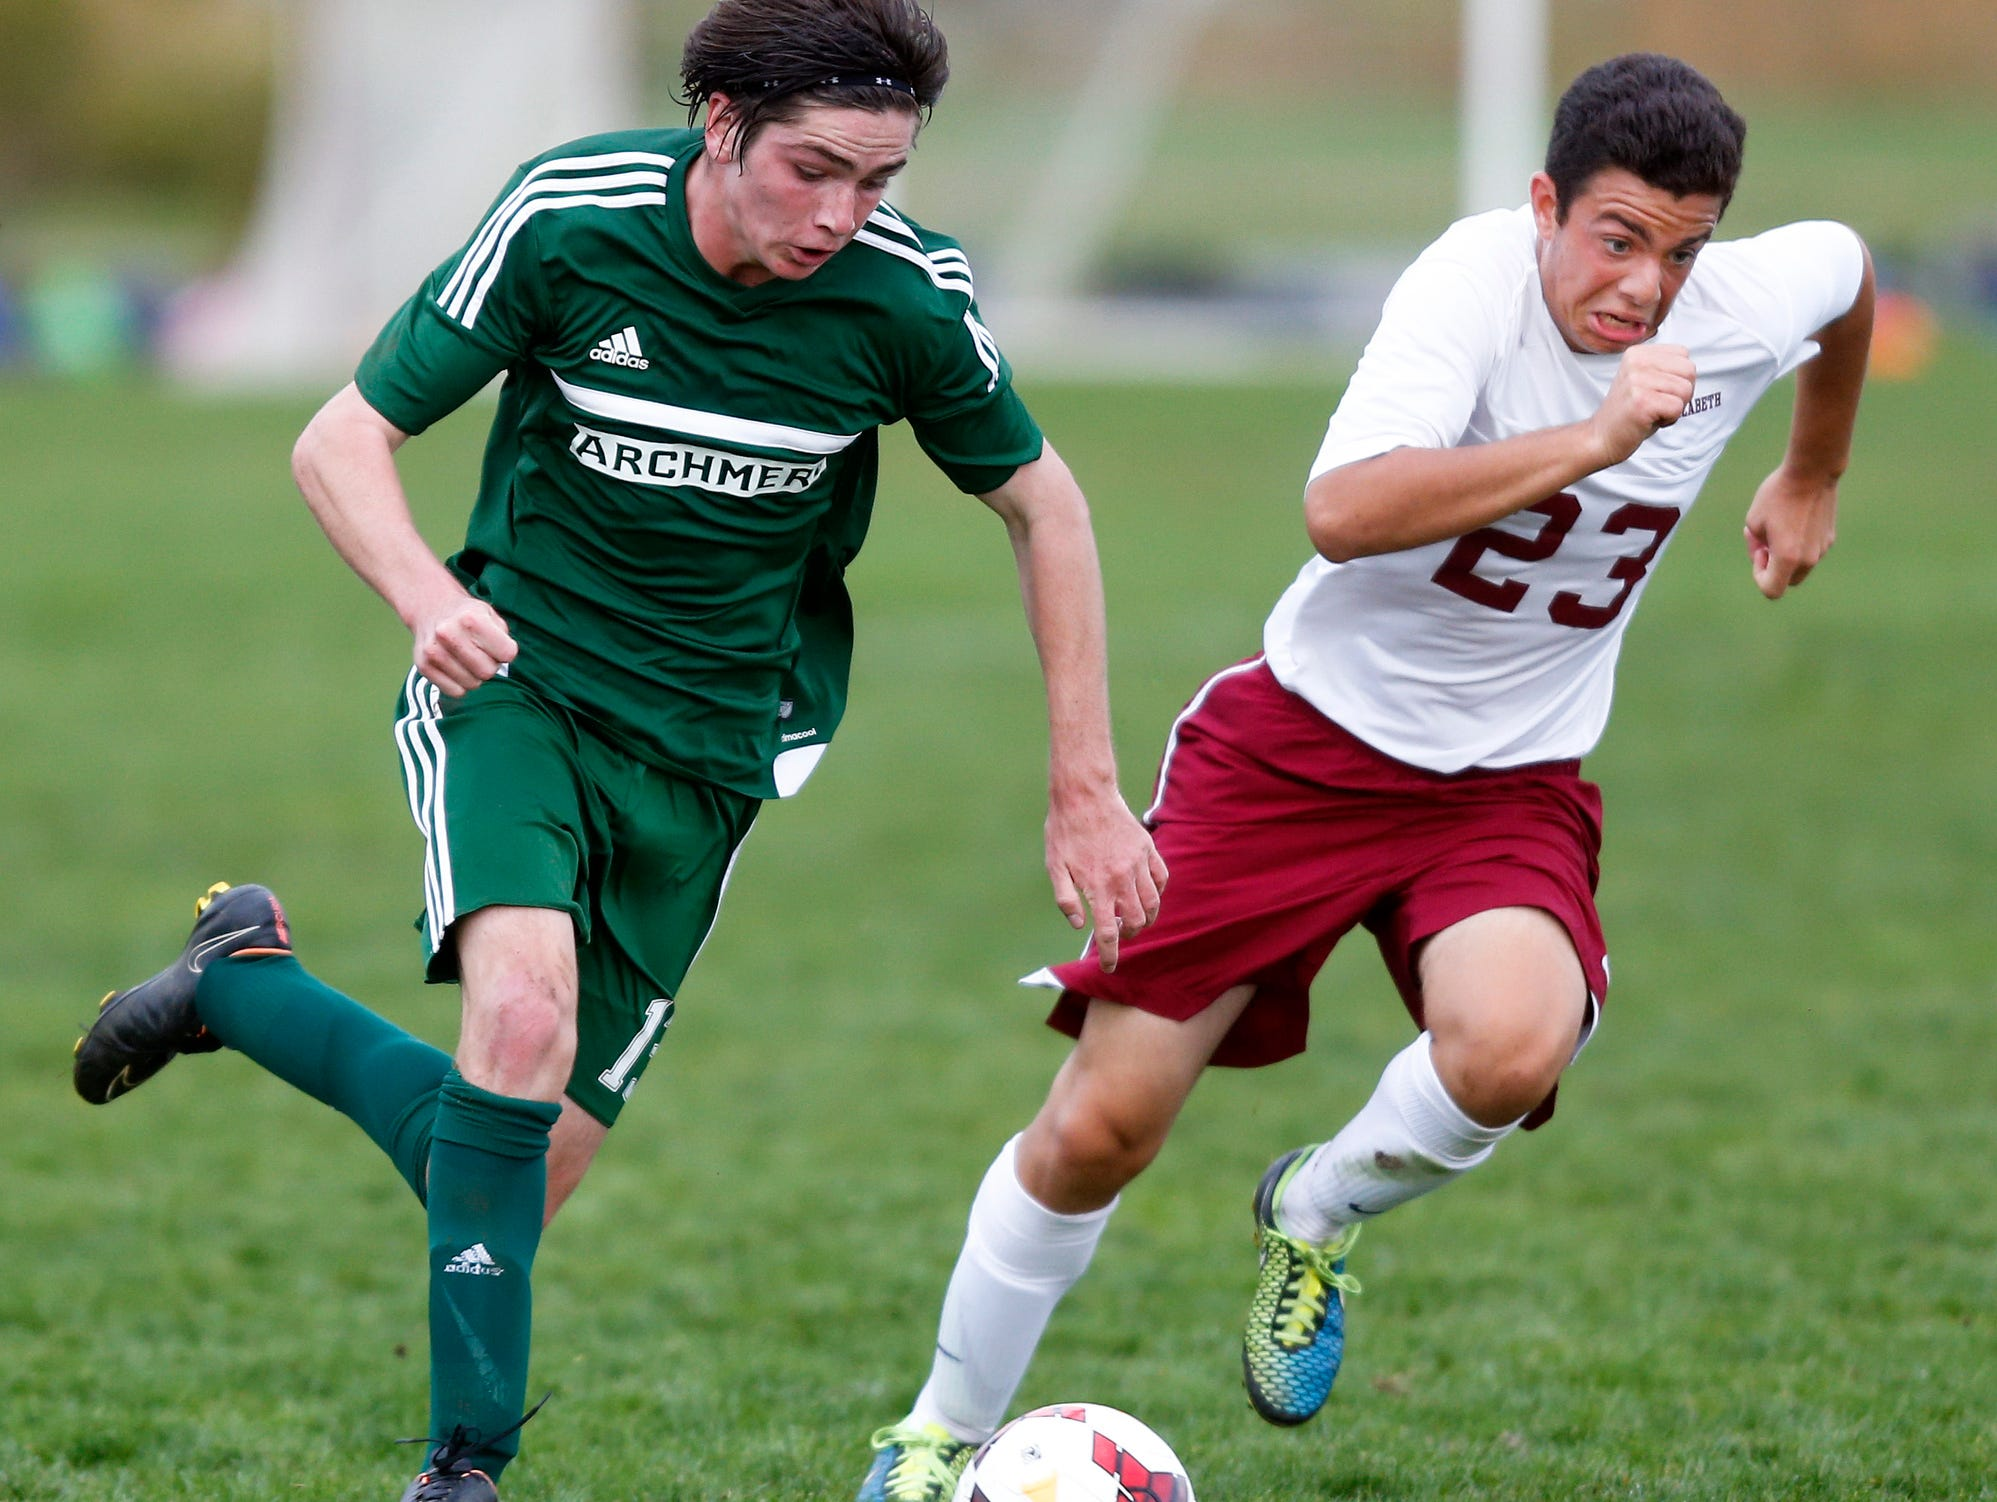 Archmere's Matt McCurnin (left) tries to move past St. Elizabeth's Marco Fiasco in the second half of Archmere's 2-1 win at Alapocas Run State Park Tuesday.